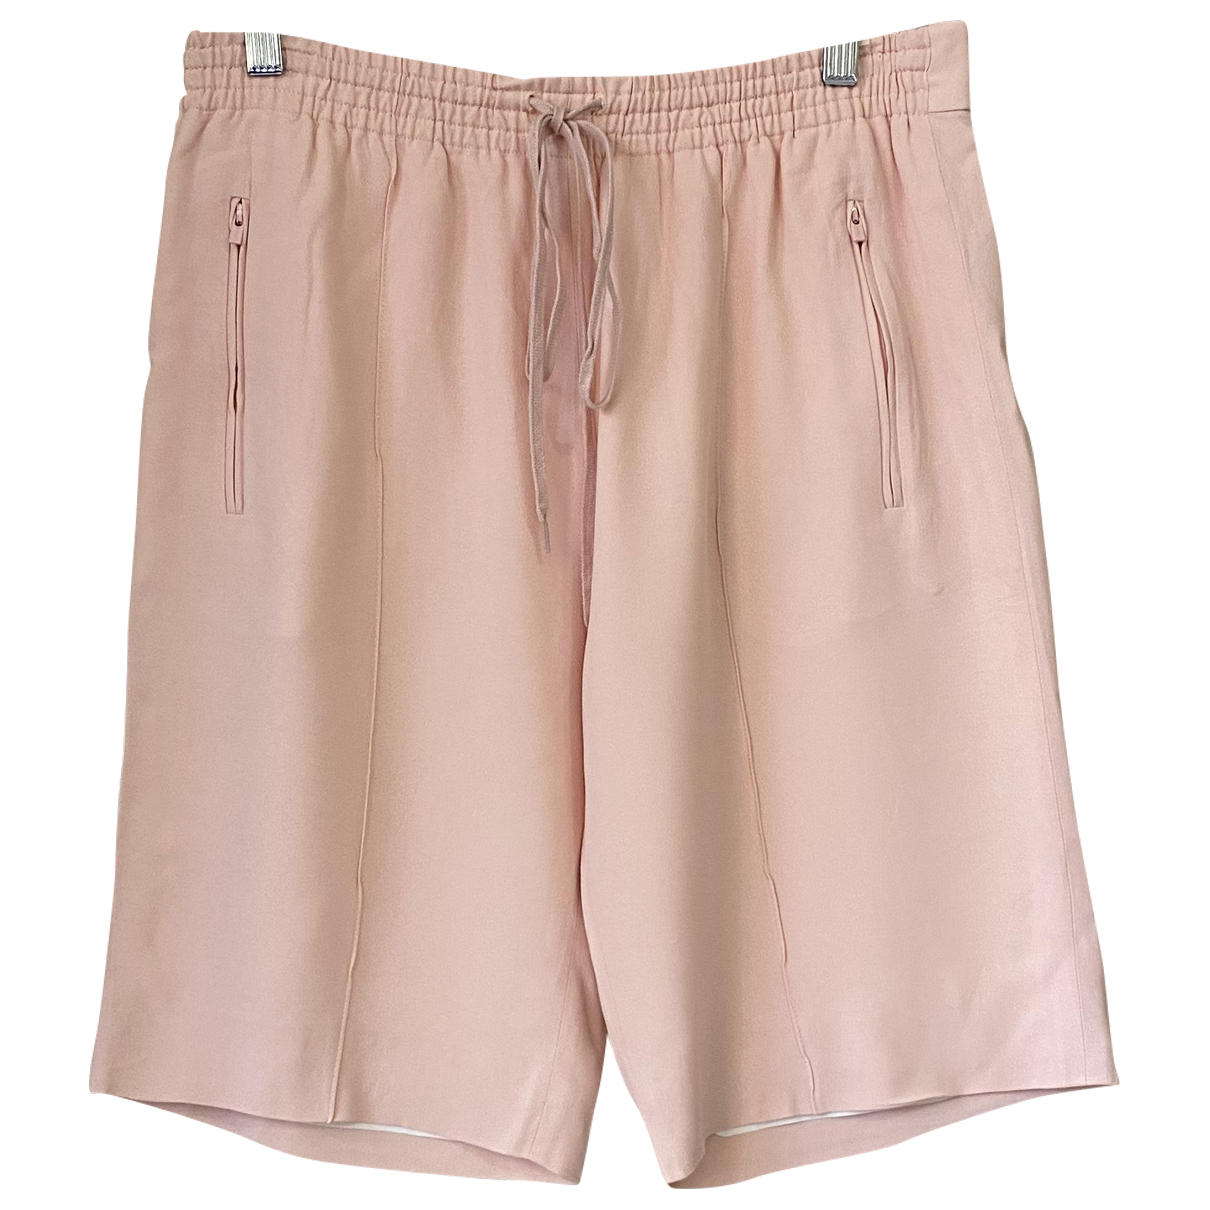 Chloé \N Pink Shorts for Women 36 FR